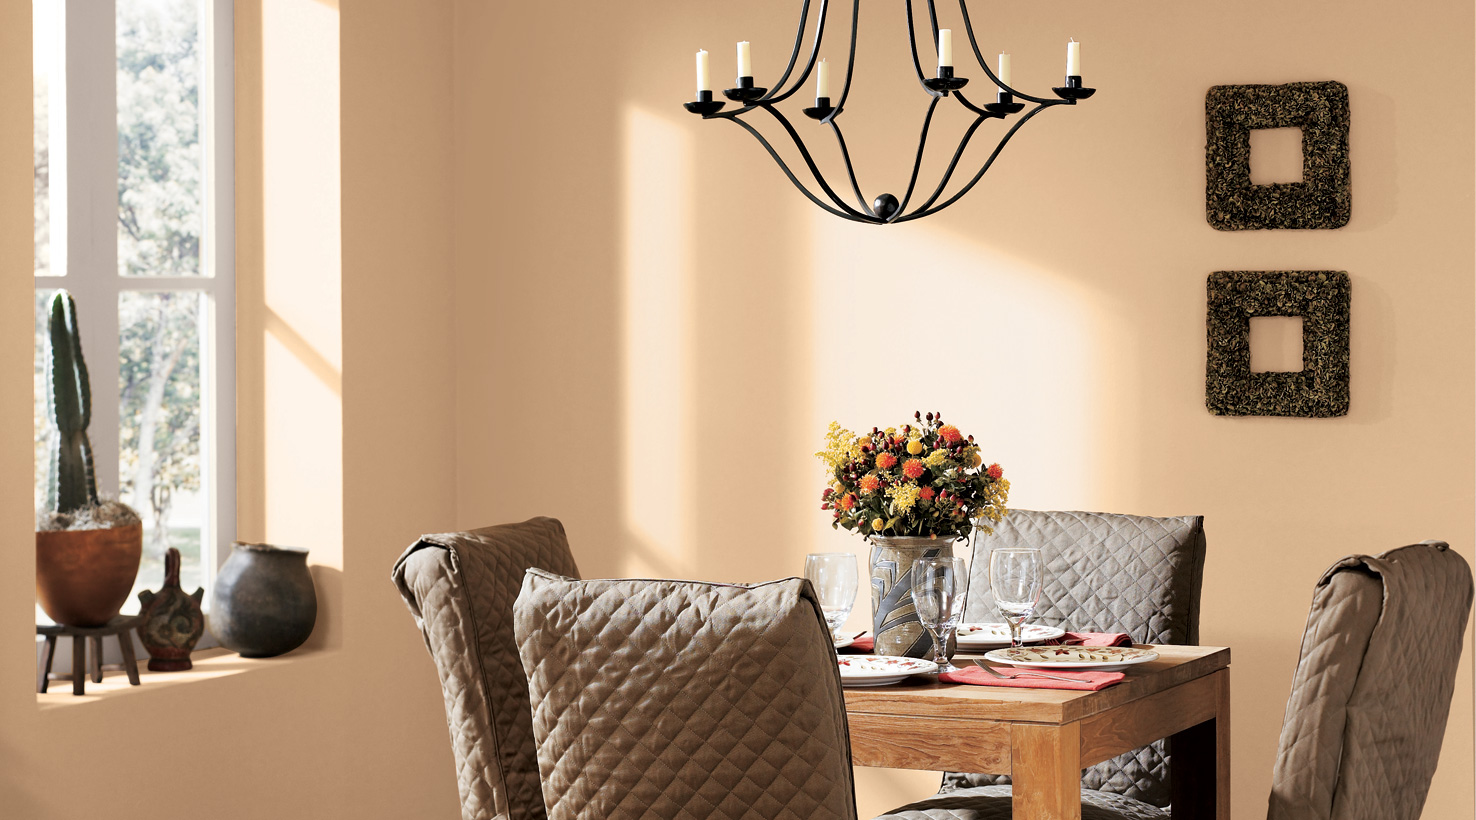 Lovely Design Of The Black Iron Chandeliers Ideas With Brown Wooden Table Ideas For Dining Room